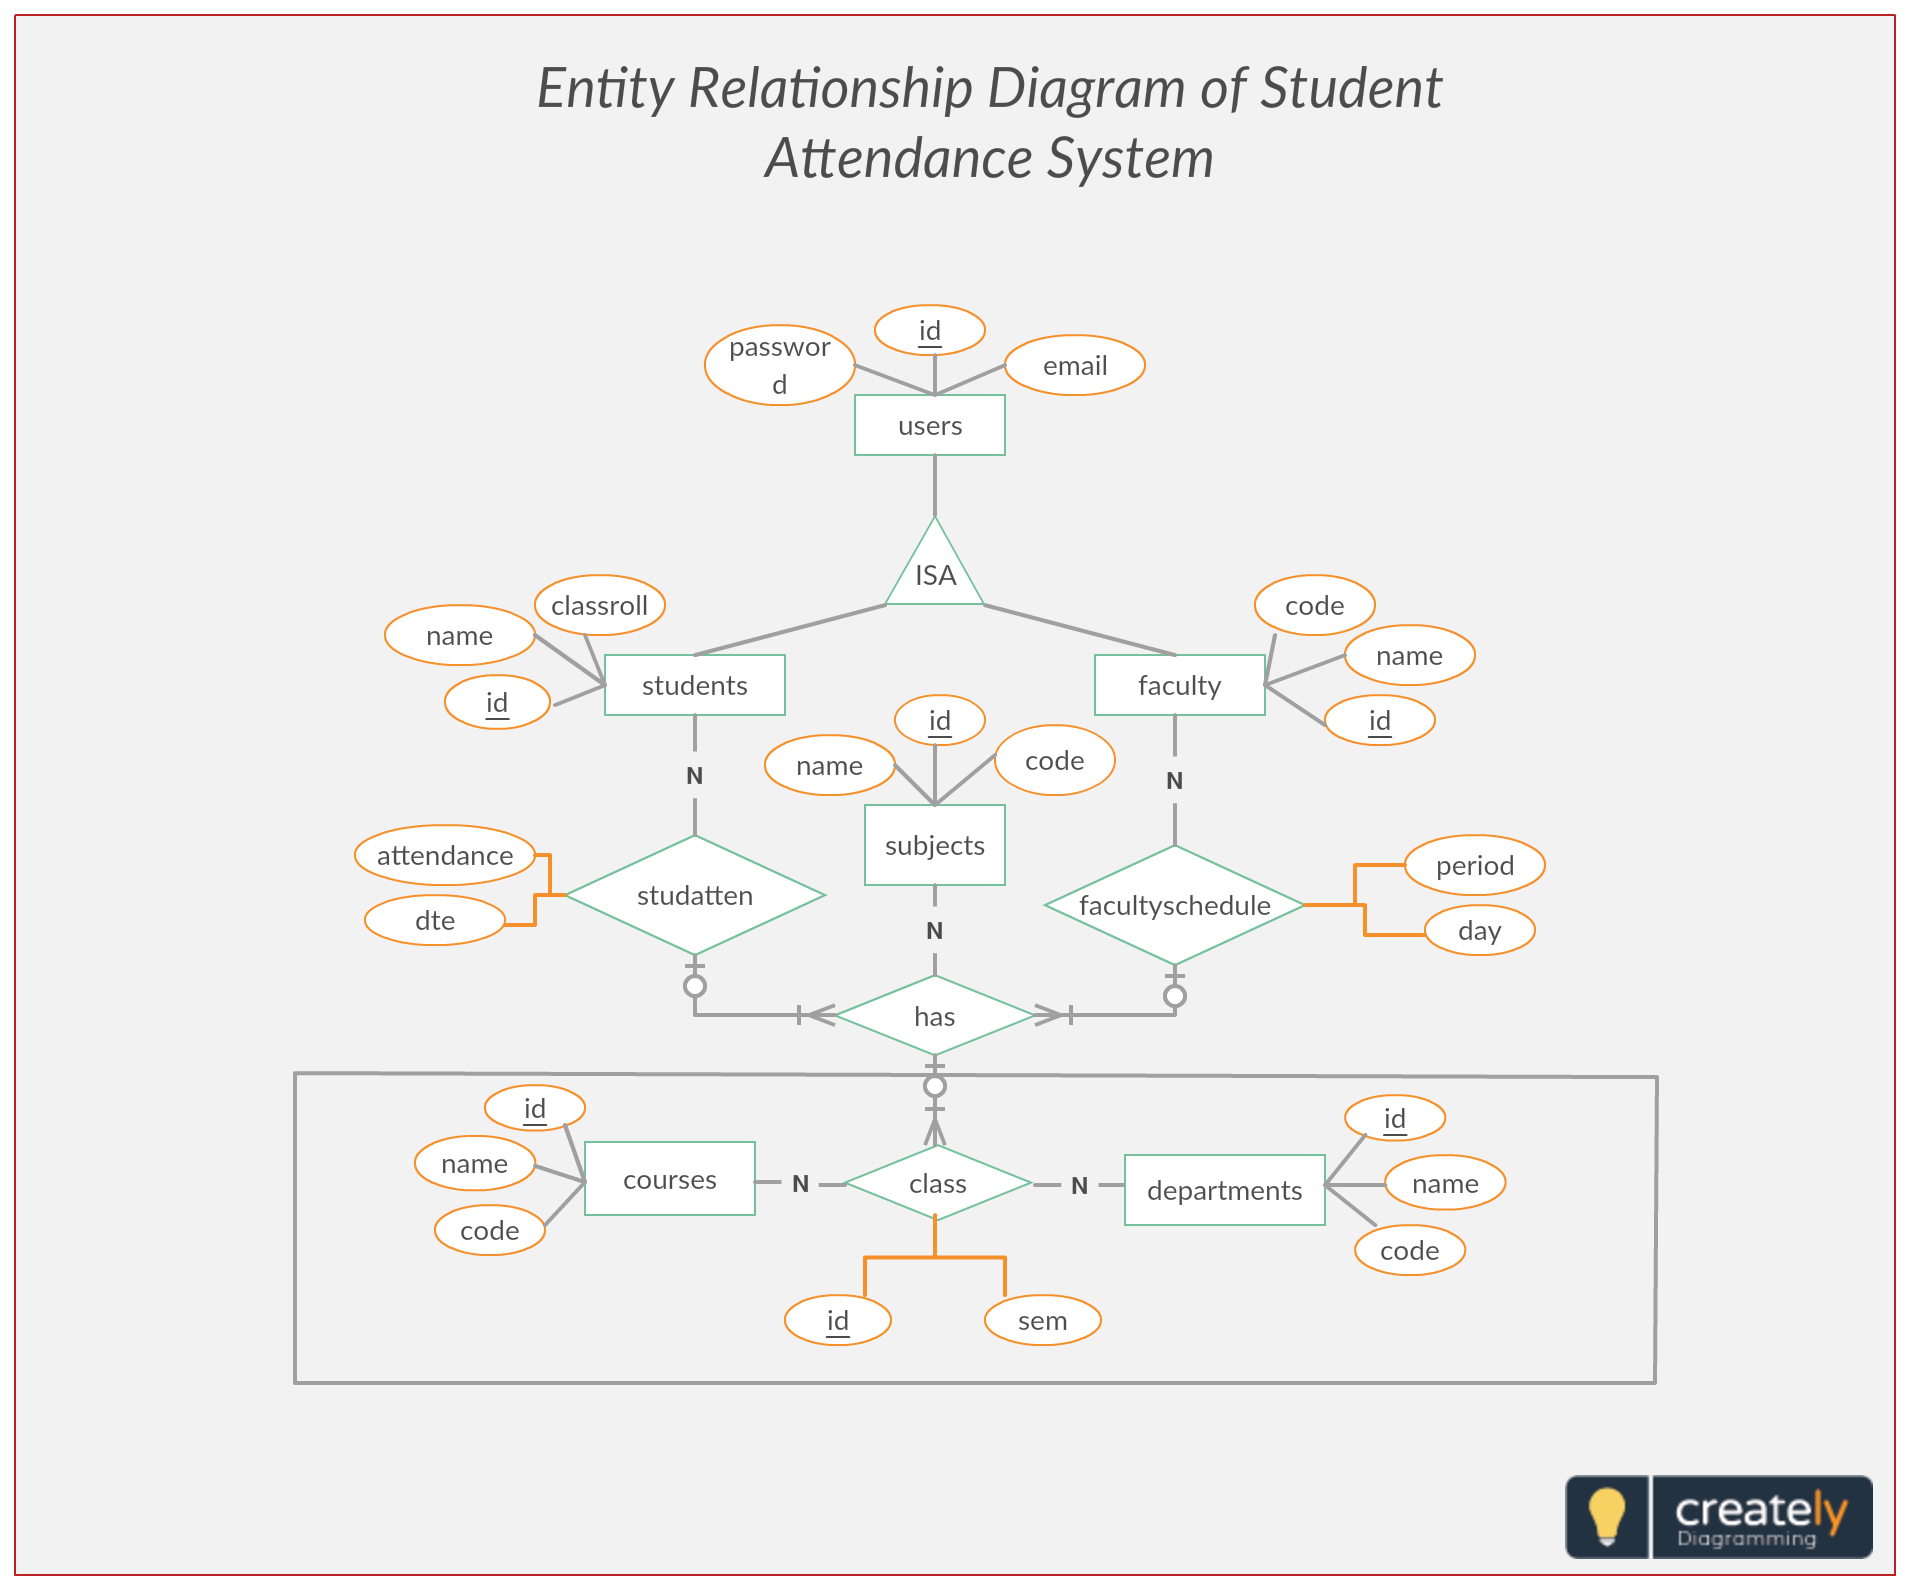 hight resolution of entity relationship diagram represents the relationship between entities in a table click on the image to edit online and download as image files erd er